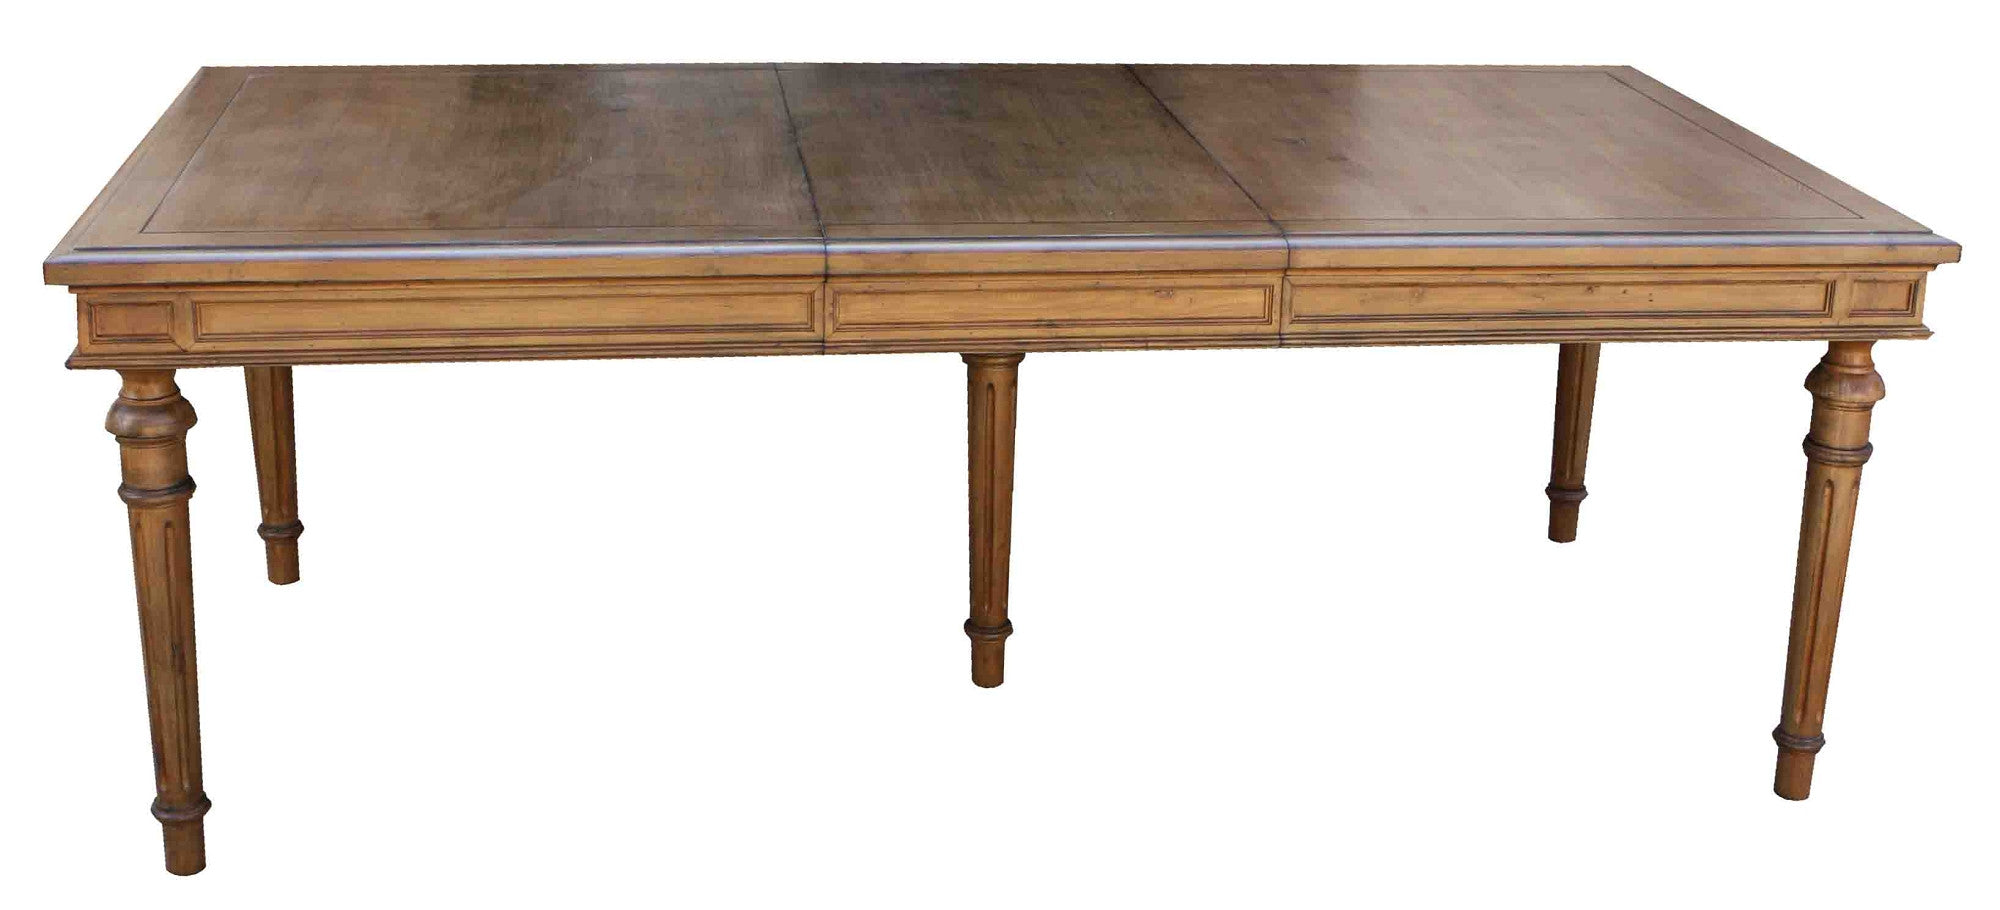 Classic Colonial Fluted Leg Dining Table With Center Extension